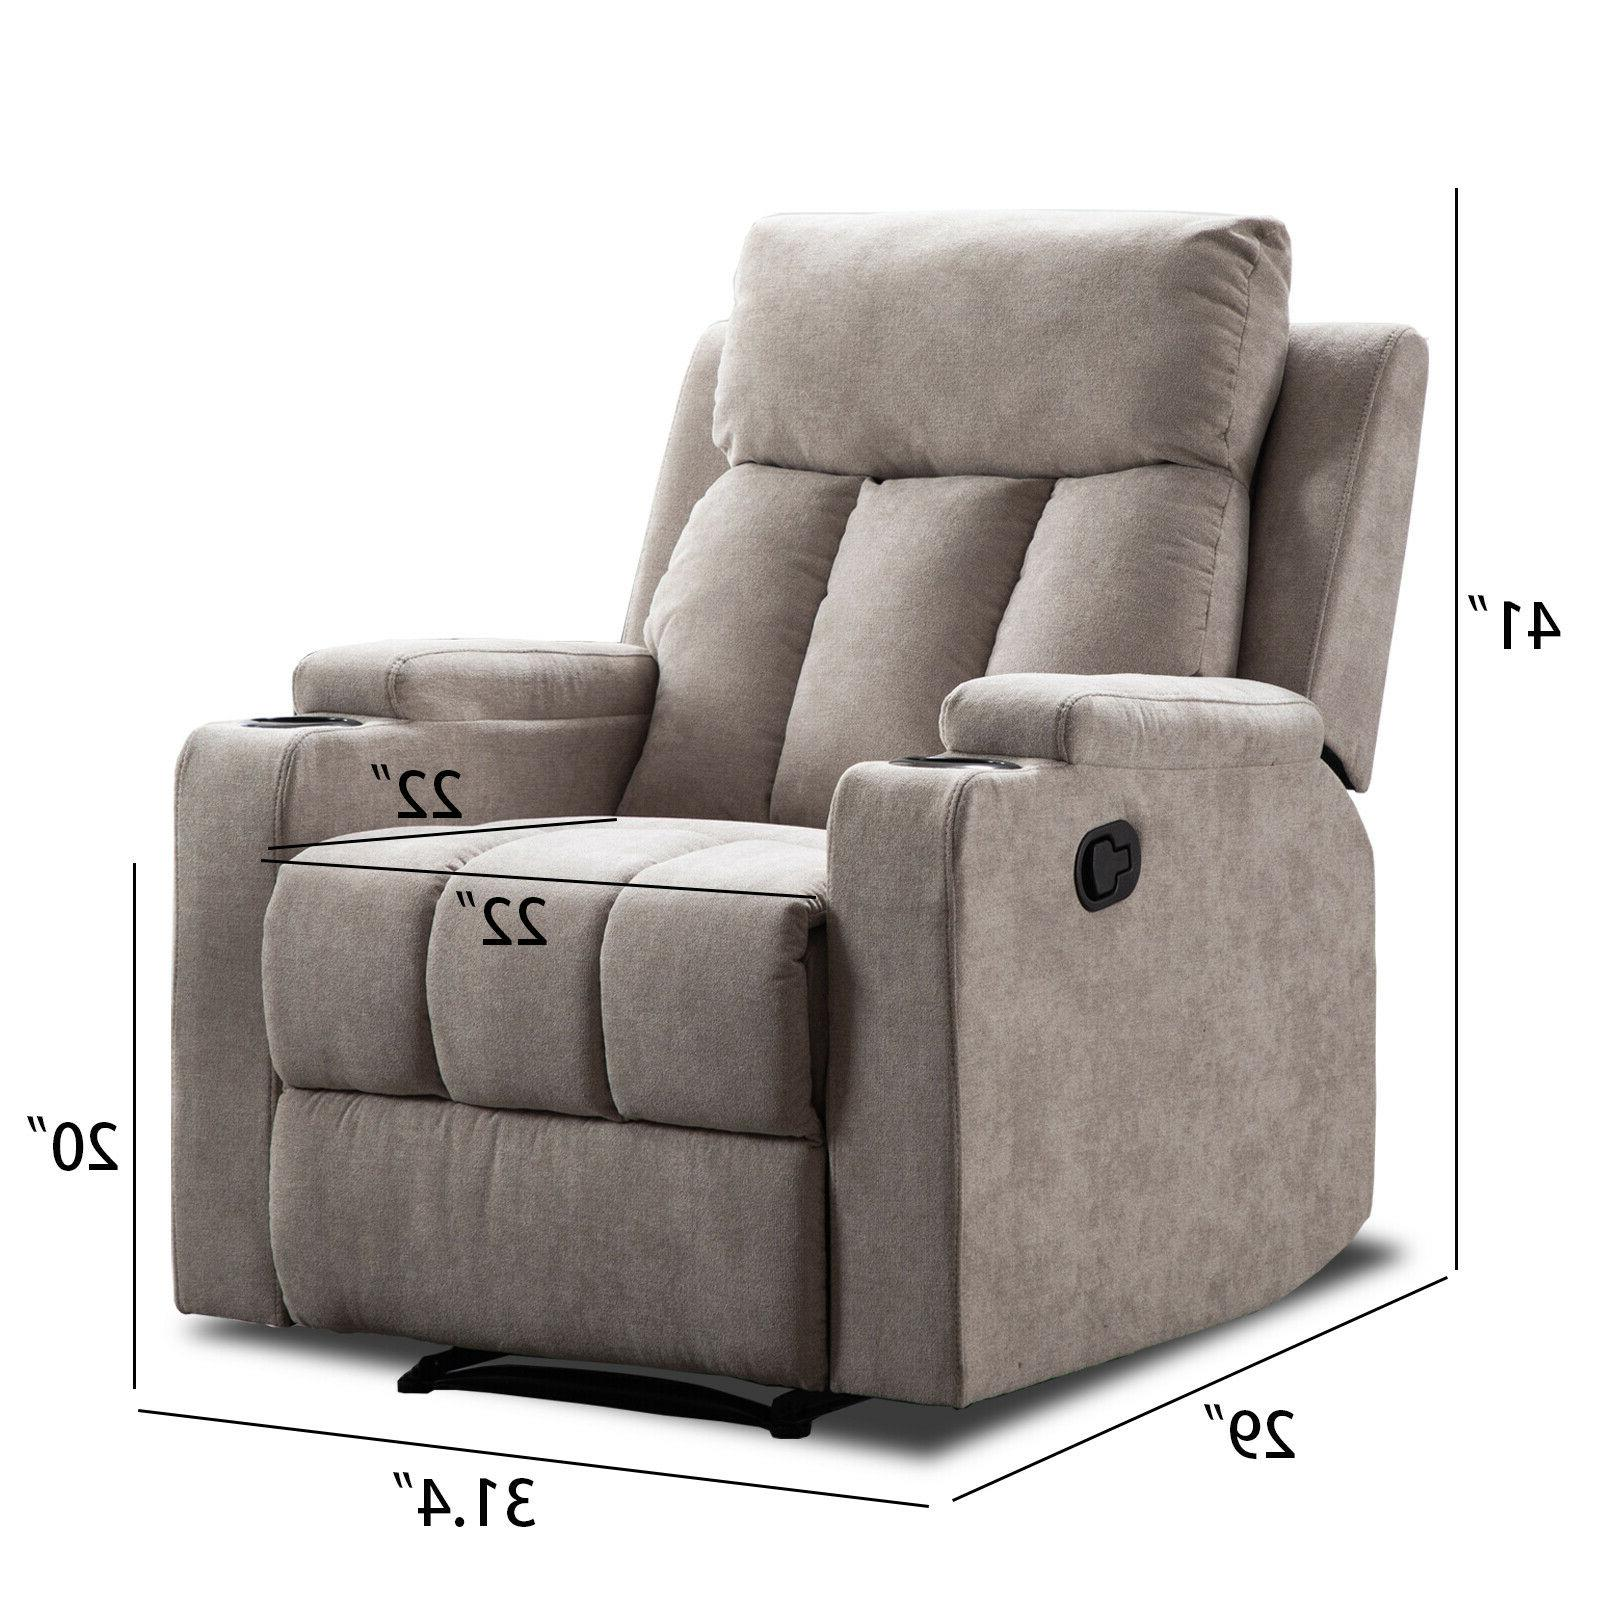 Sofa Seating w/2 Cup